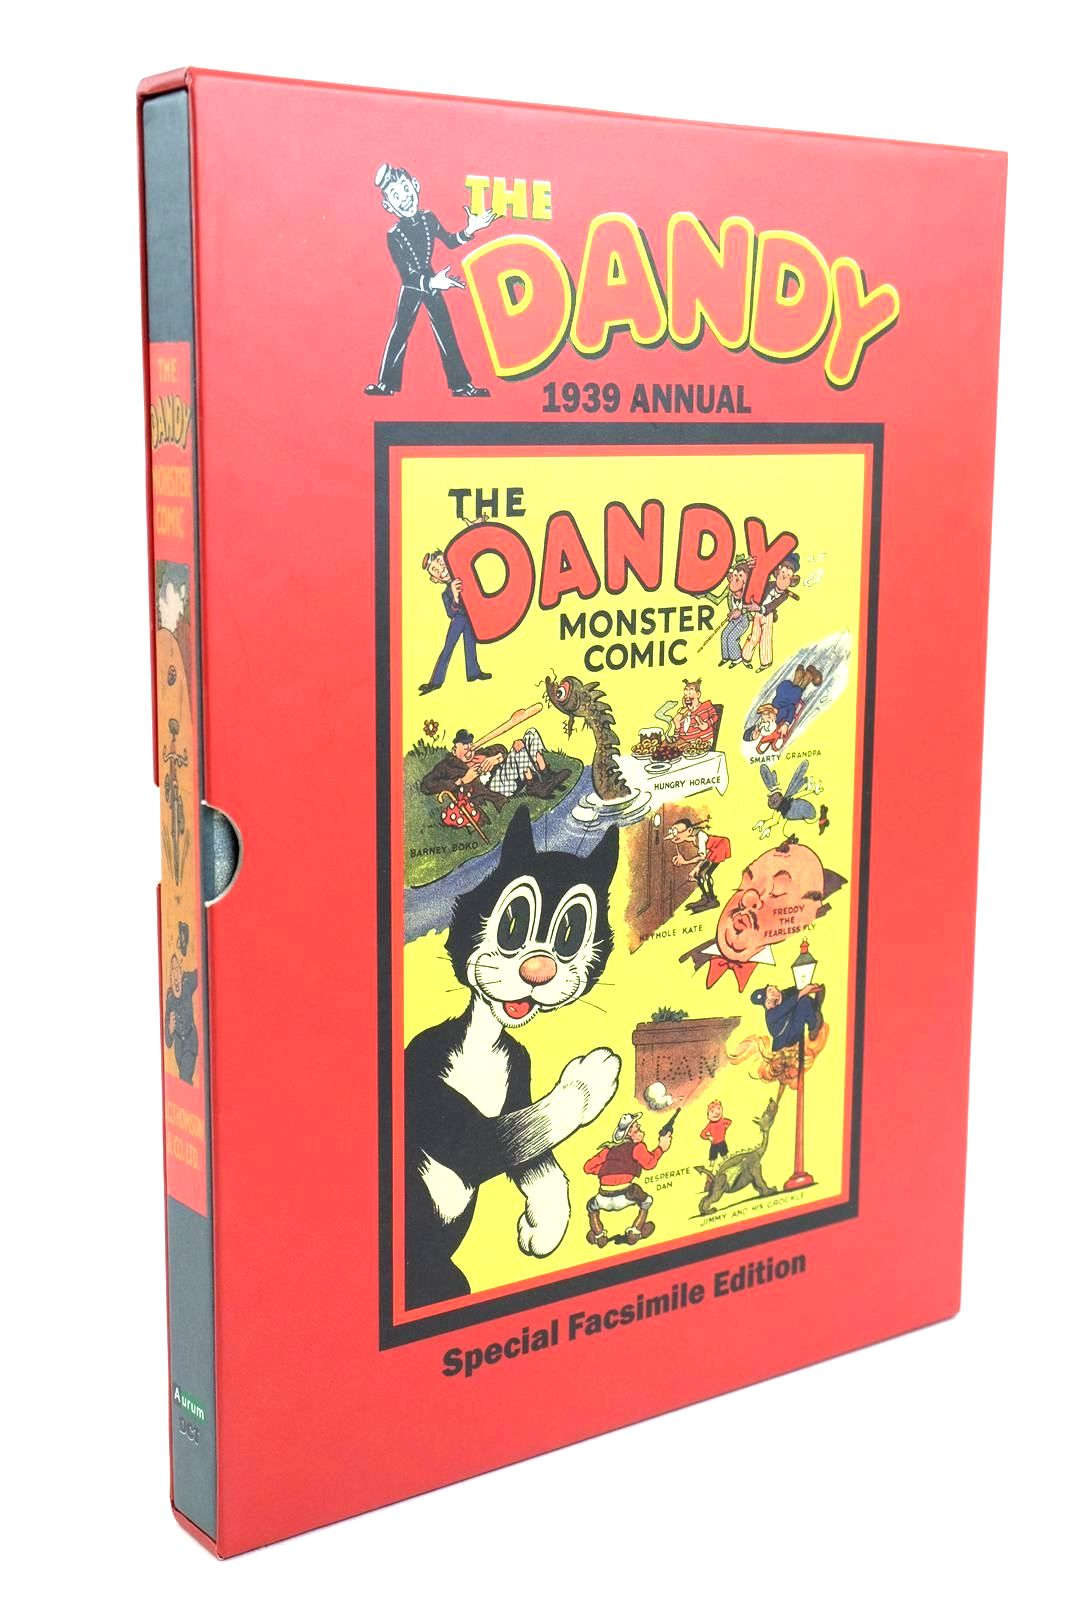 Photo of THE DANDY MONSTER COMIC 1939 (FACSIMILE) published by D.C. Thomson & Co Ltd. (STOCK CODE: 1320434)  for sale by Stella & Rose's Books